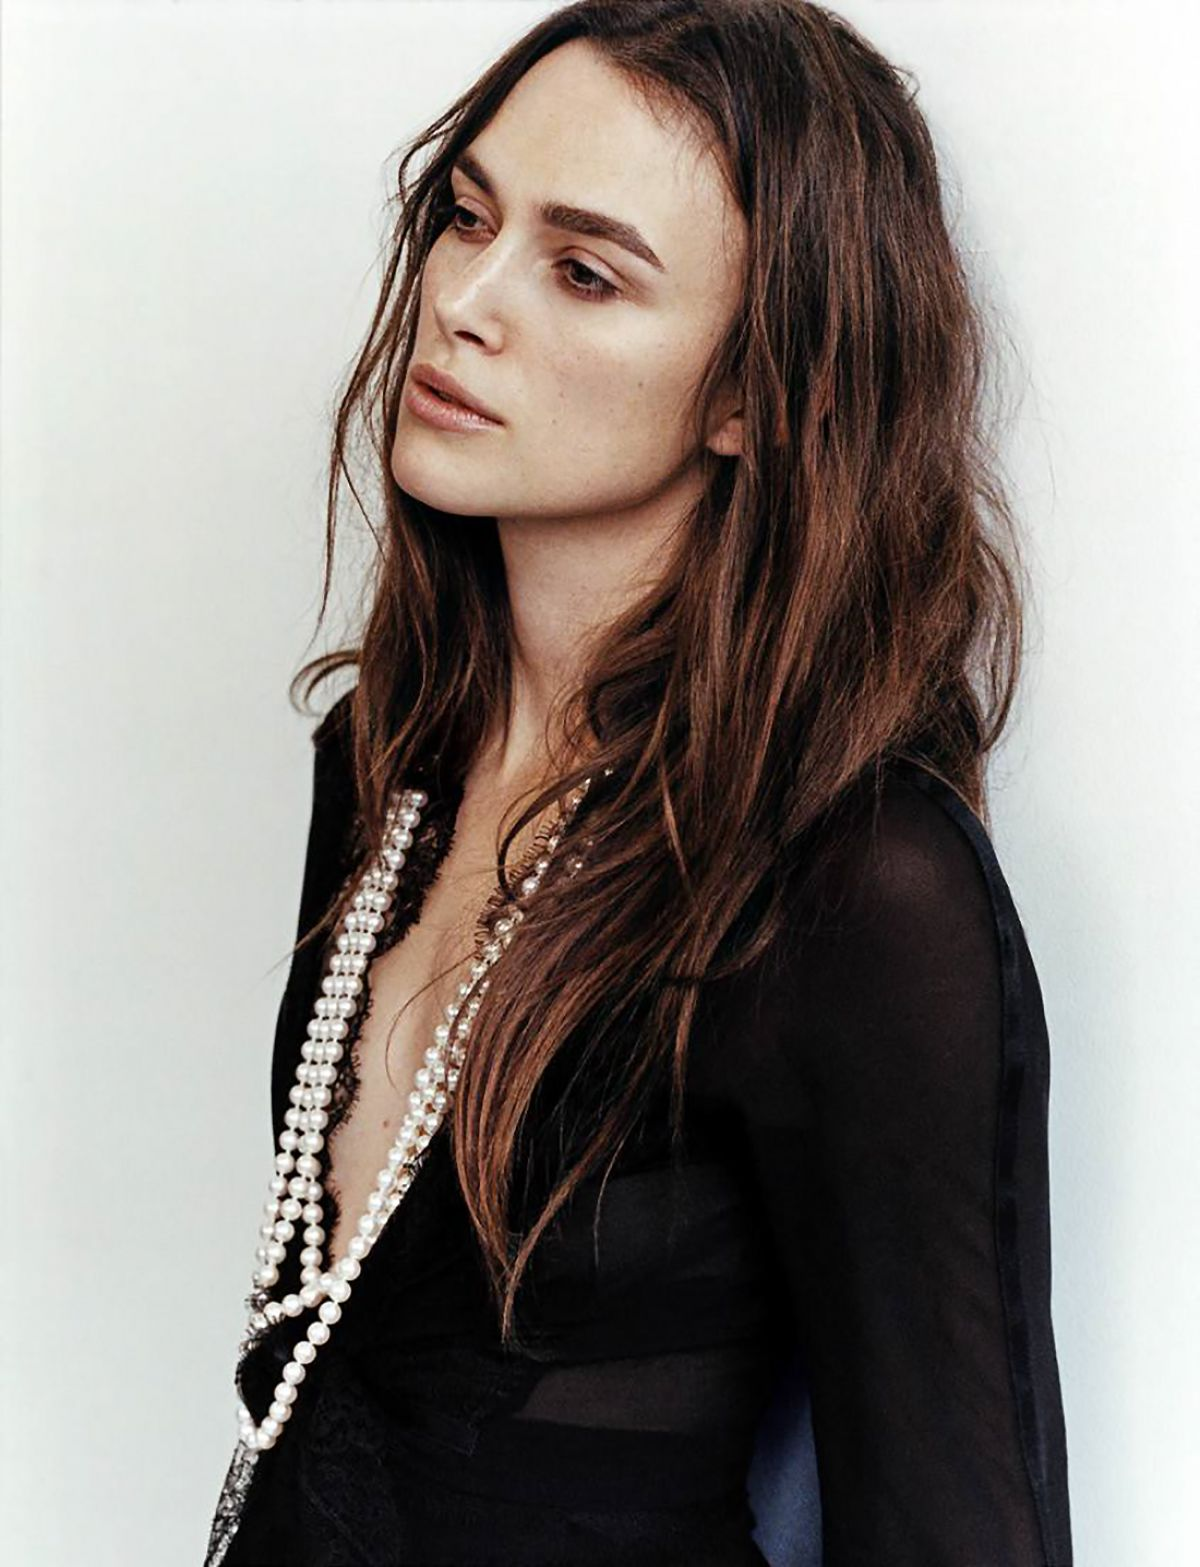 Keira knightley photo shoot